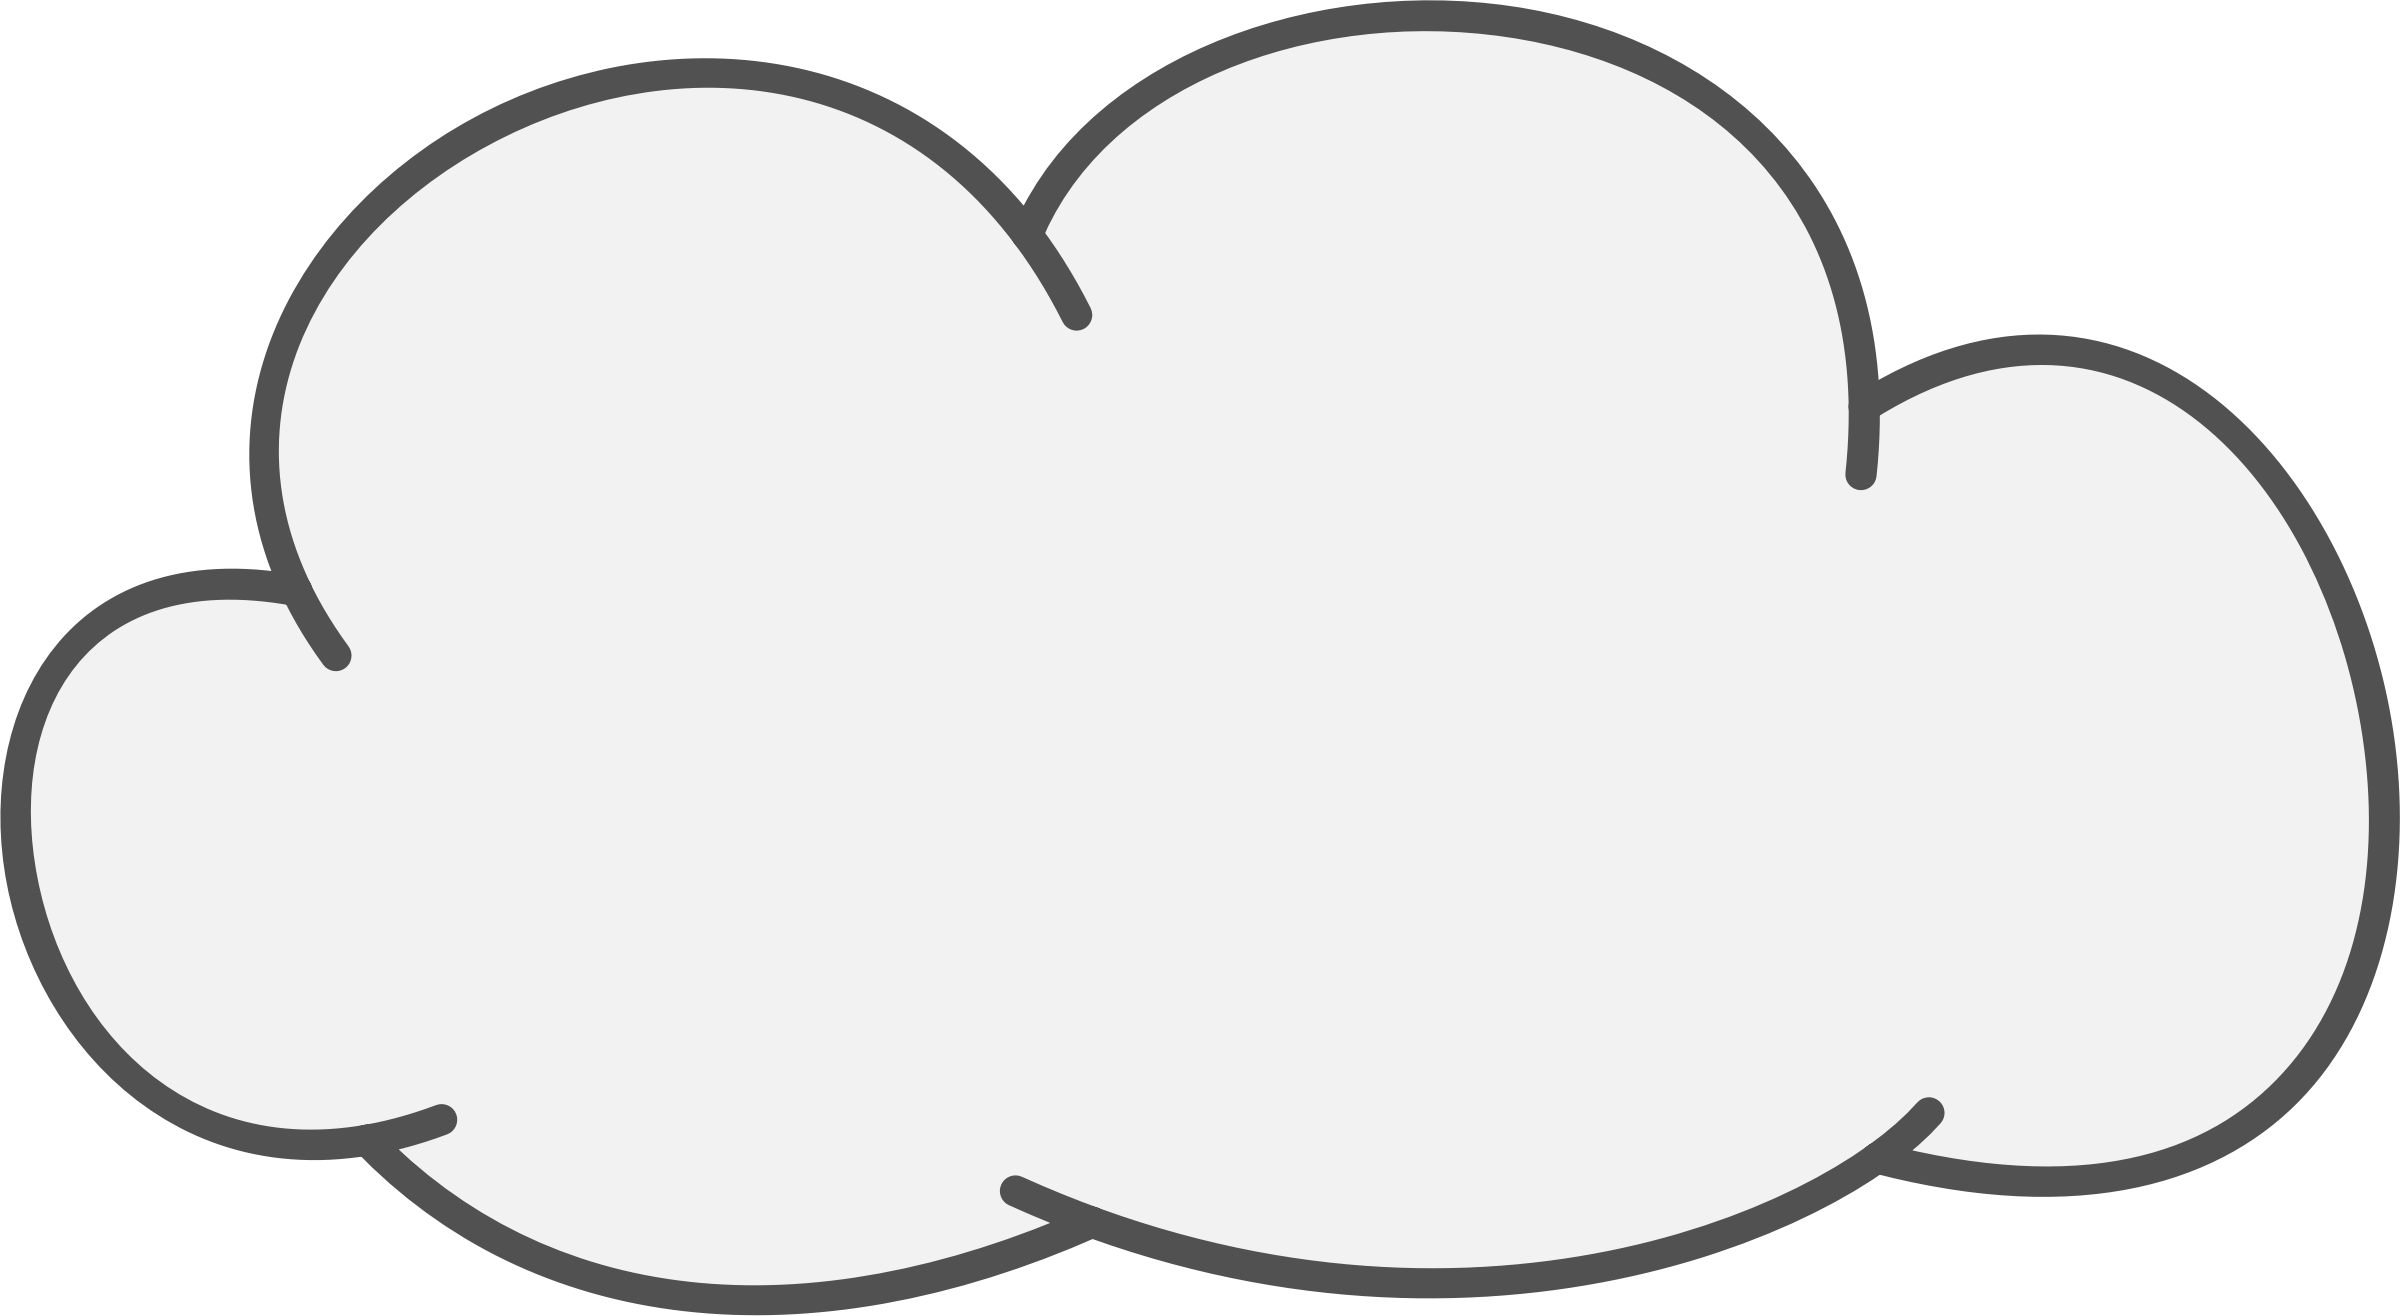 Best Cloud Outline #18682 - Clipartion.com: https://clipartion.com/free-clipart-18682